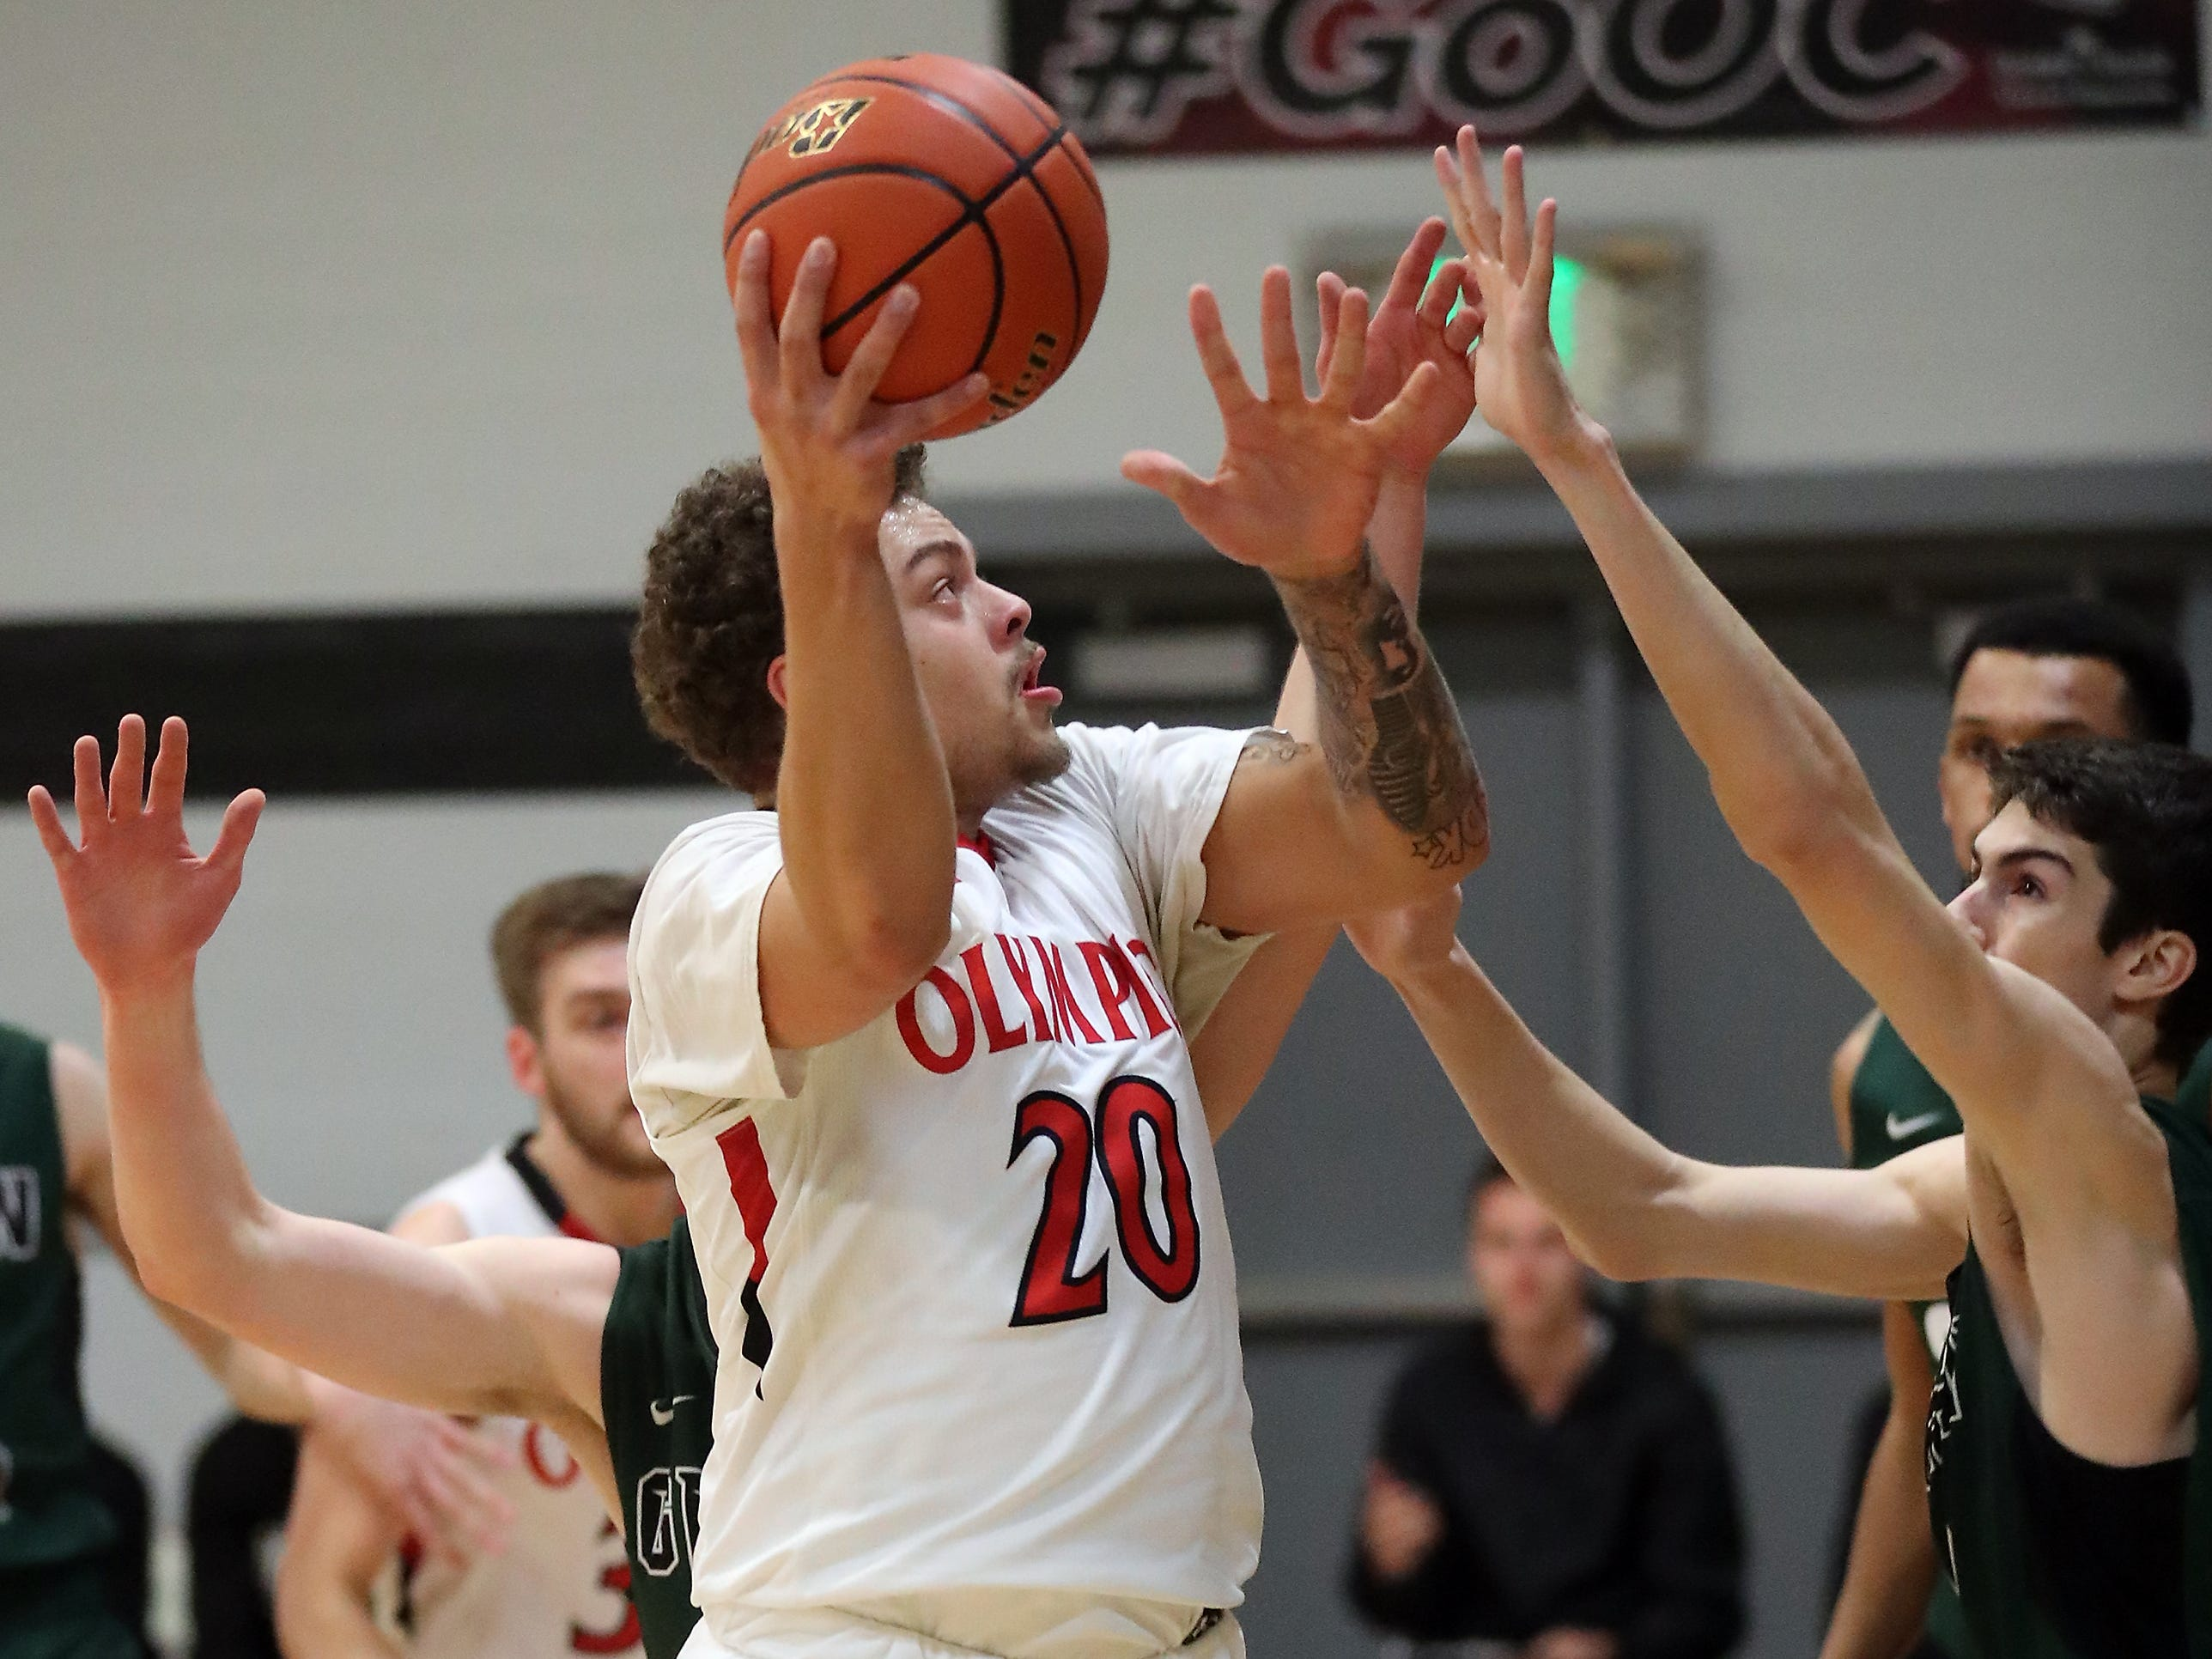 Olympic College Rangers vs Green River Gators at Olympic College in Bremerton on Tuesday, December 11, 2018.